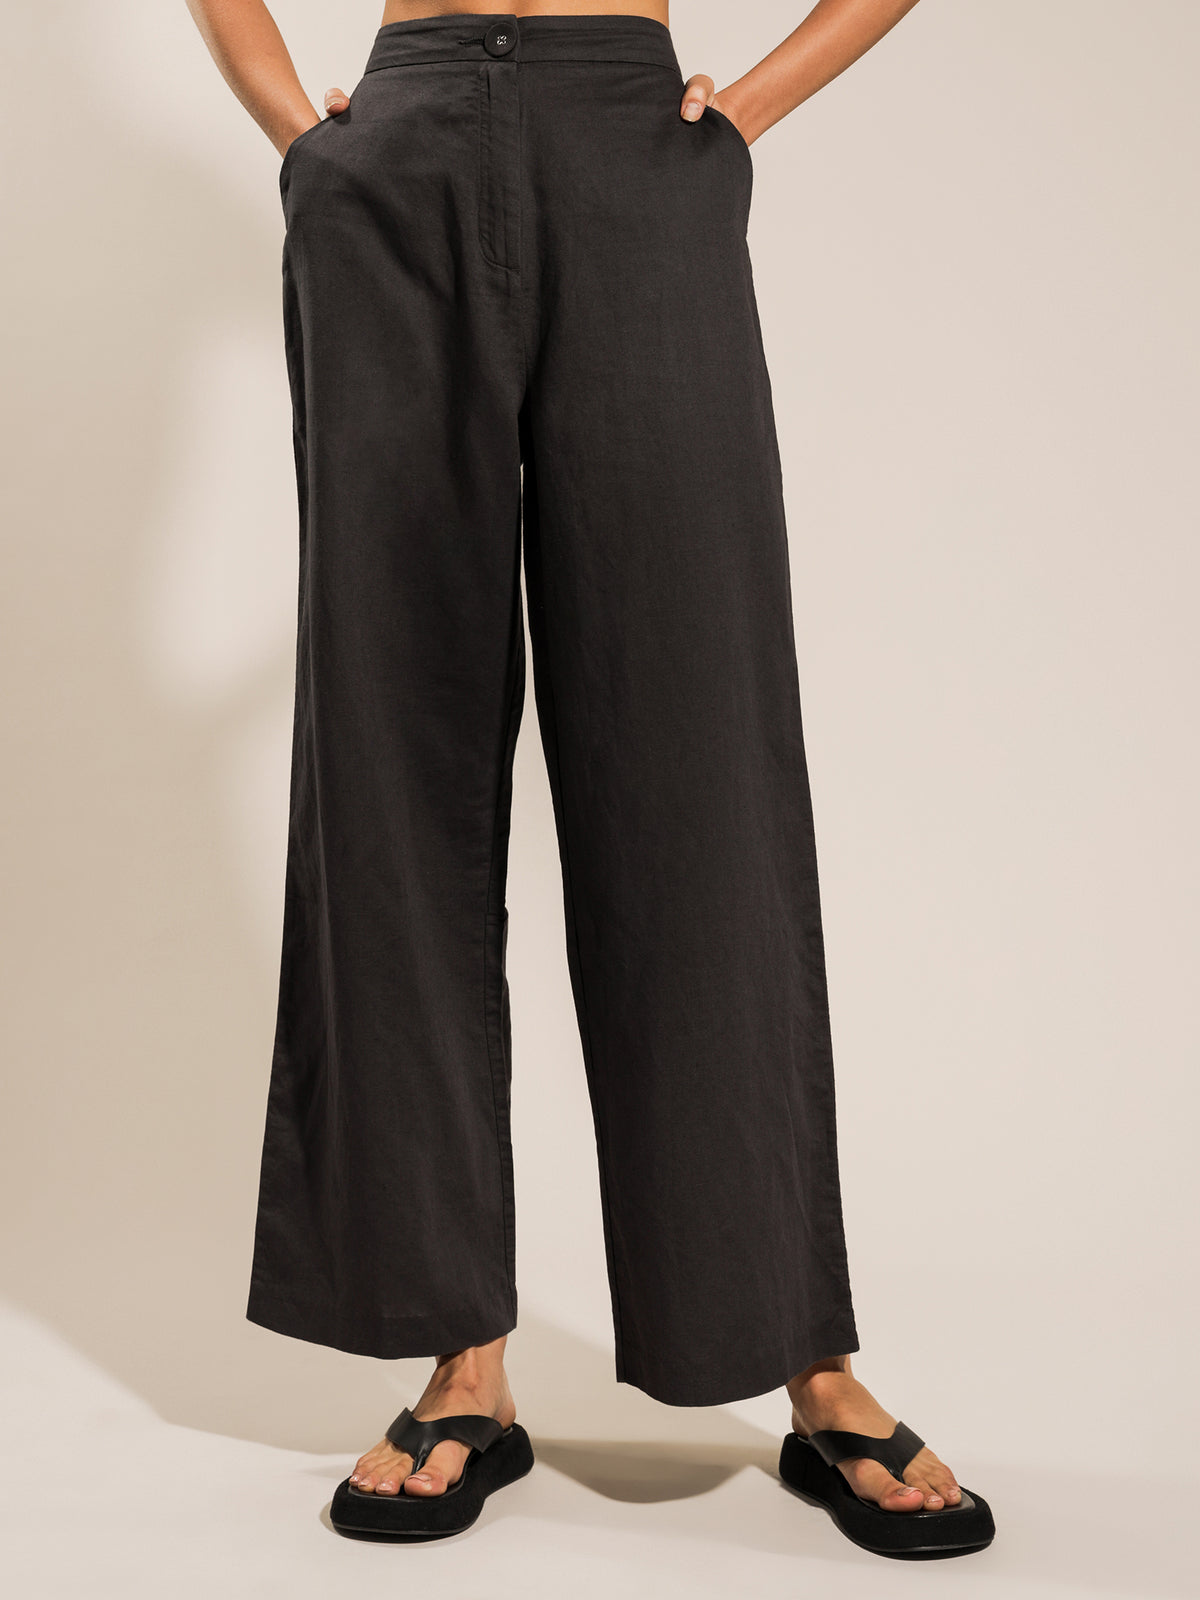 Kora Wide Leg Pants in Coal